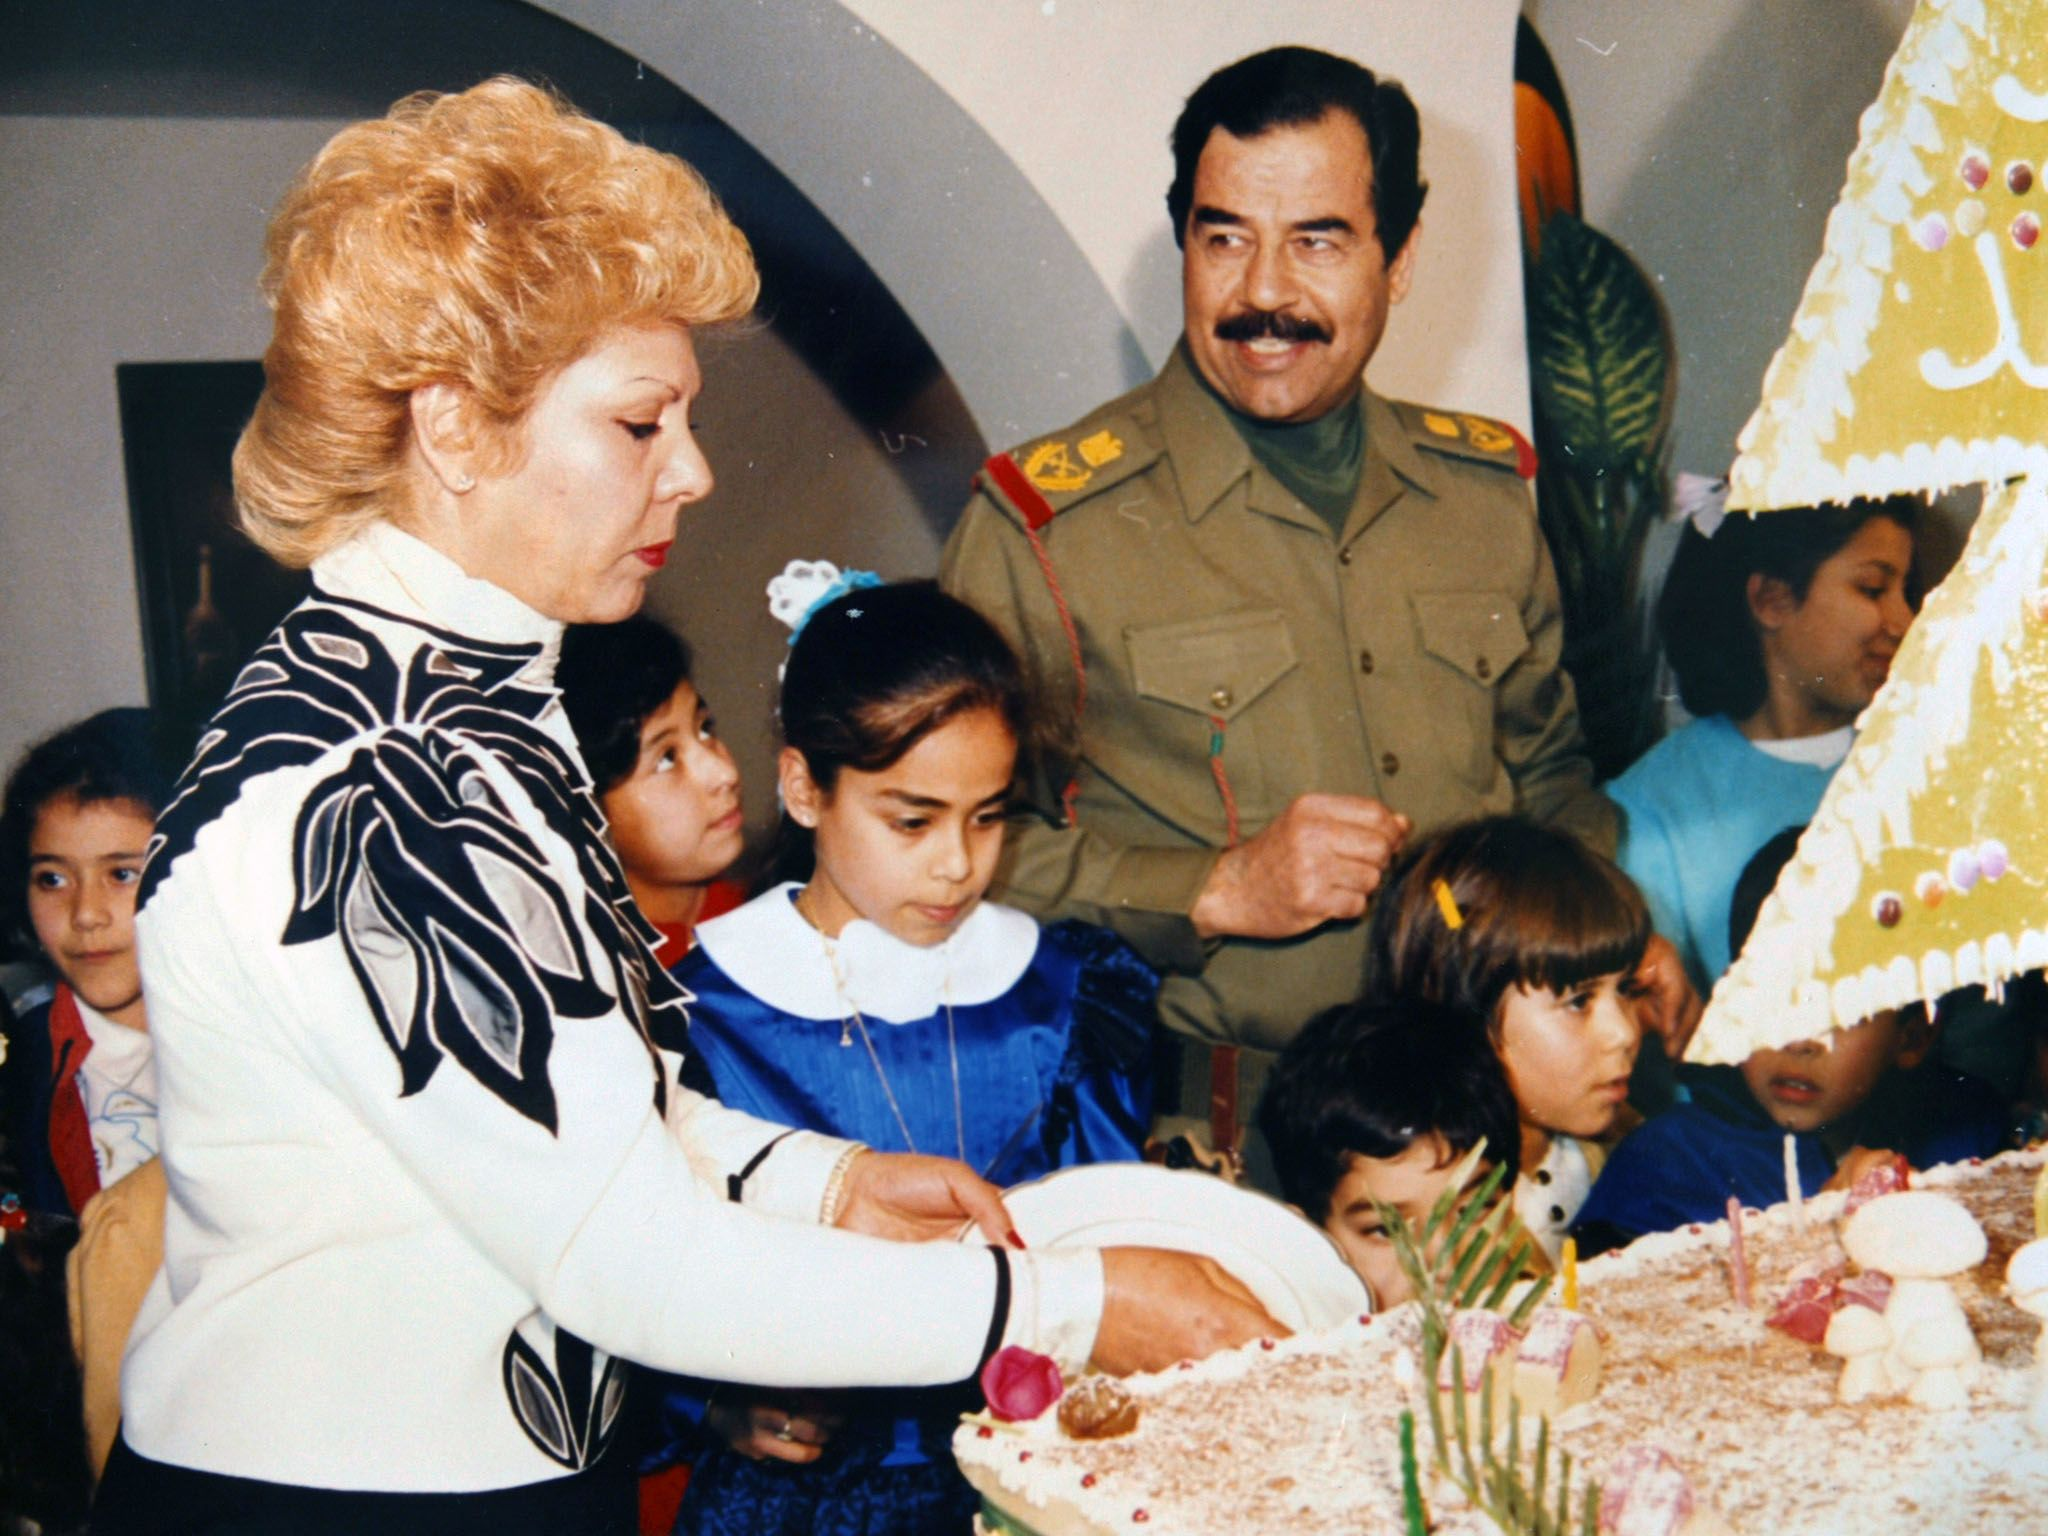 Iraq: Saddam Hussein celebrates the birthday of his daughter Hala as his first wife Sajda Kher... [Photo of the day - سپتامبر 2016]